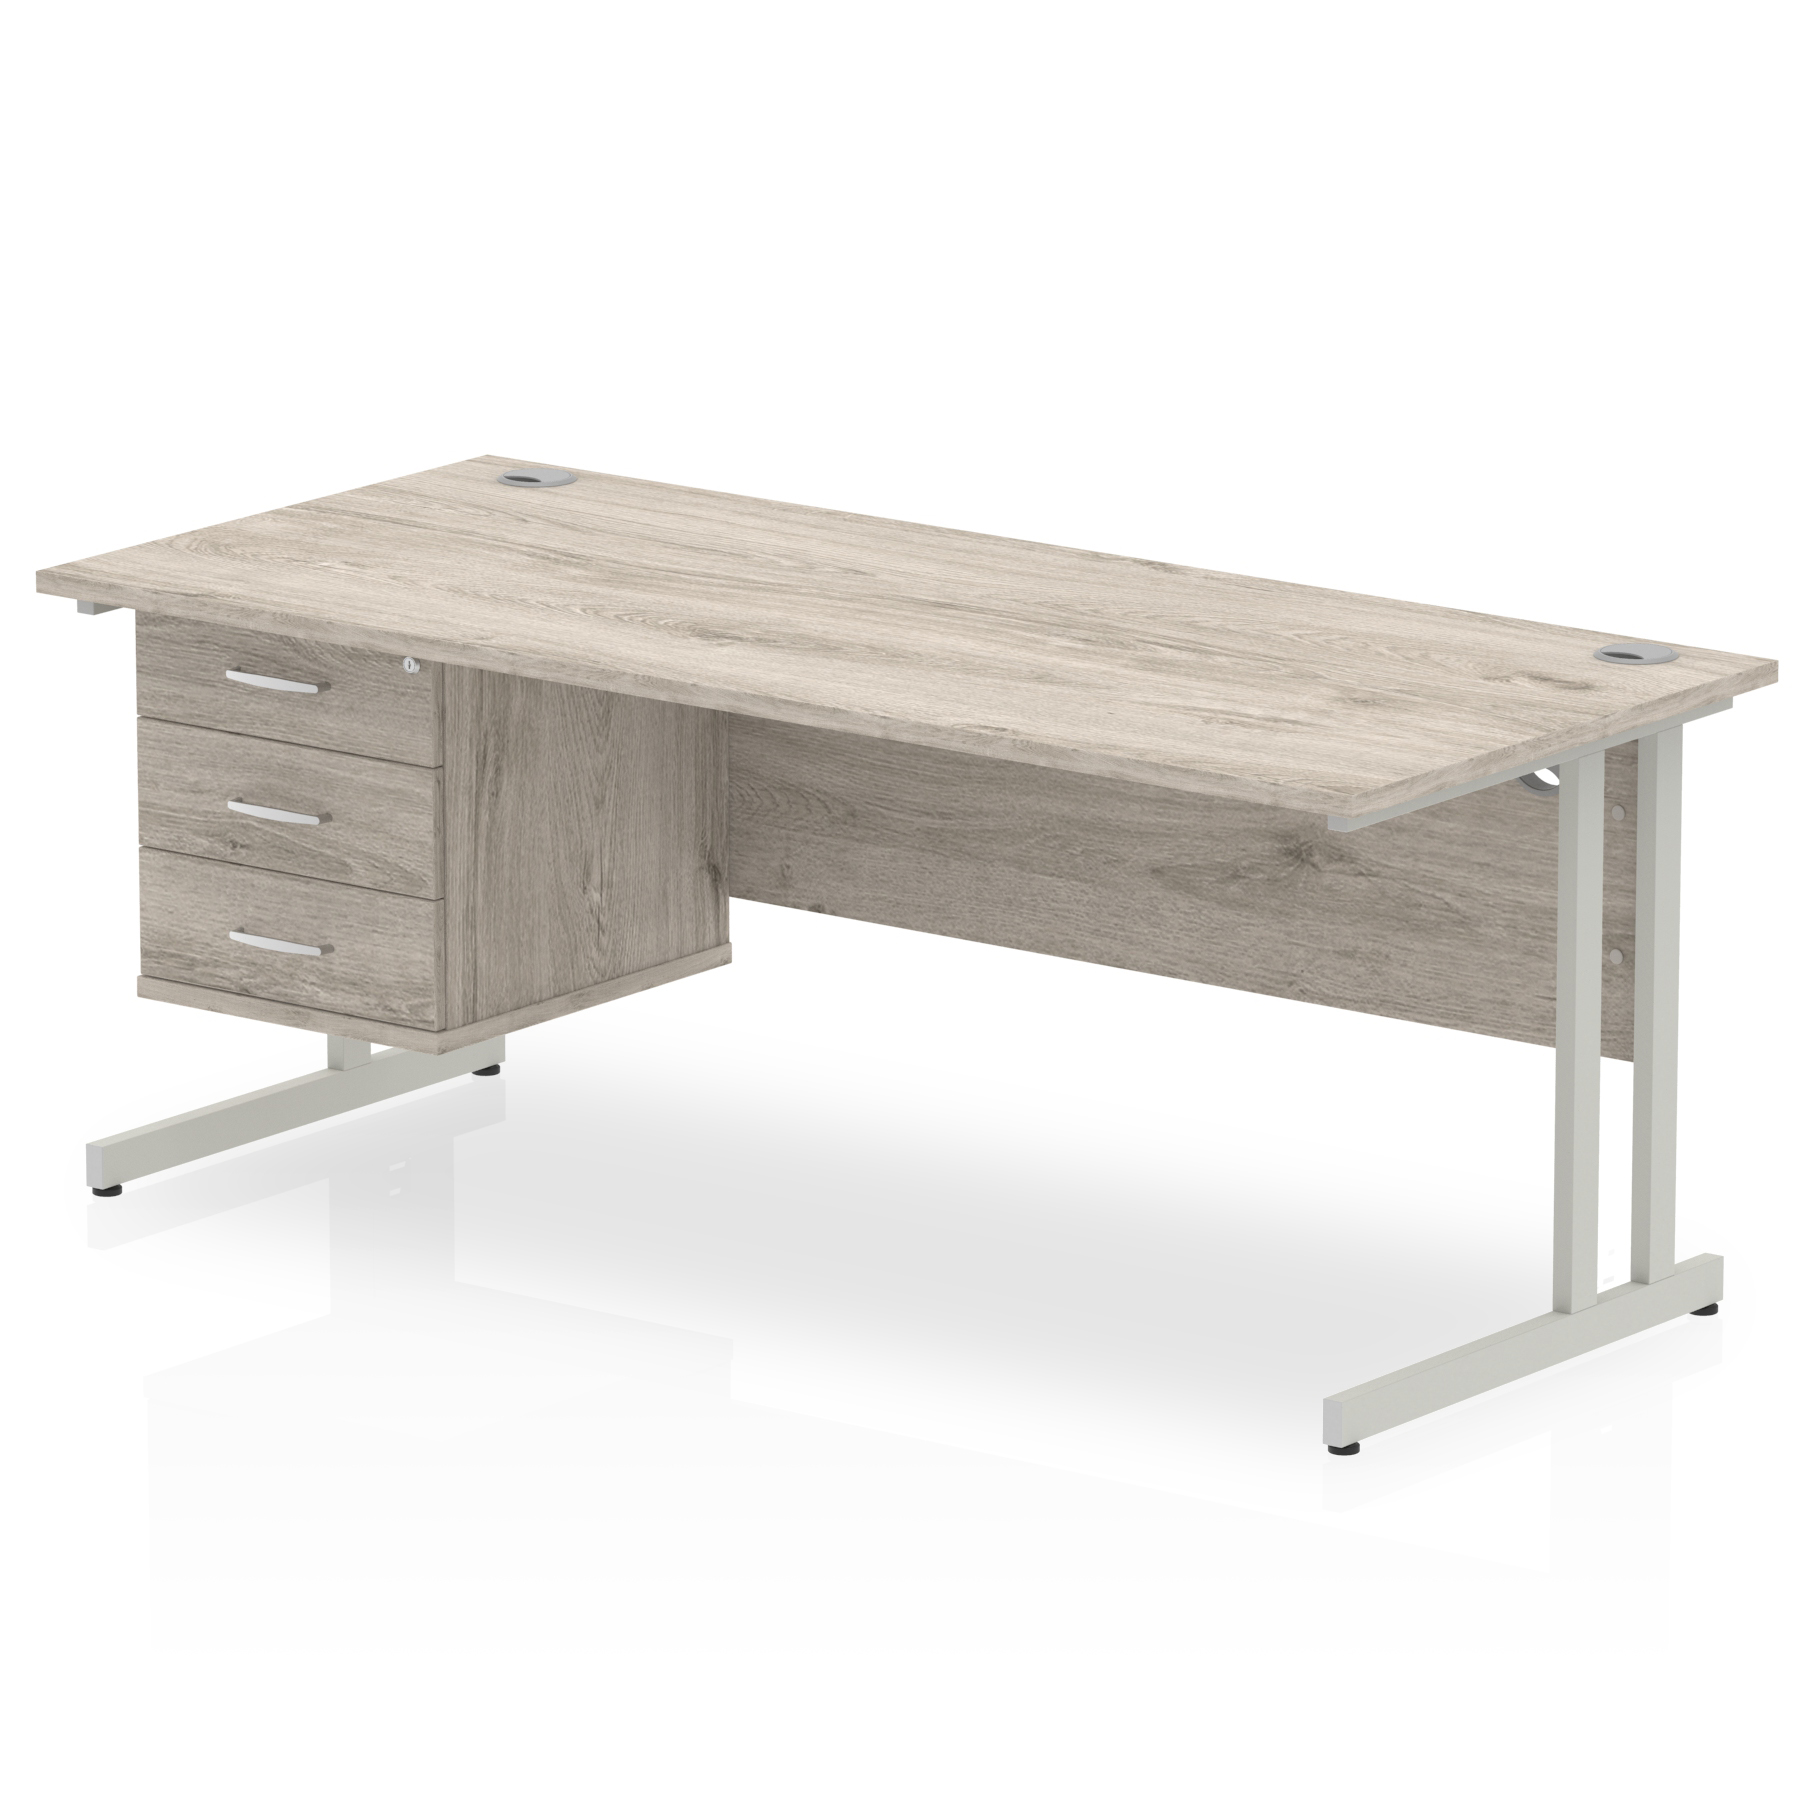 Trexus Rectangular Desk Silver Cantilever Leg 1800x800mm Fixed Ped 3 Drawers Grey Oak Ref I003512